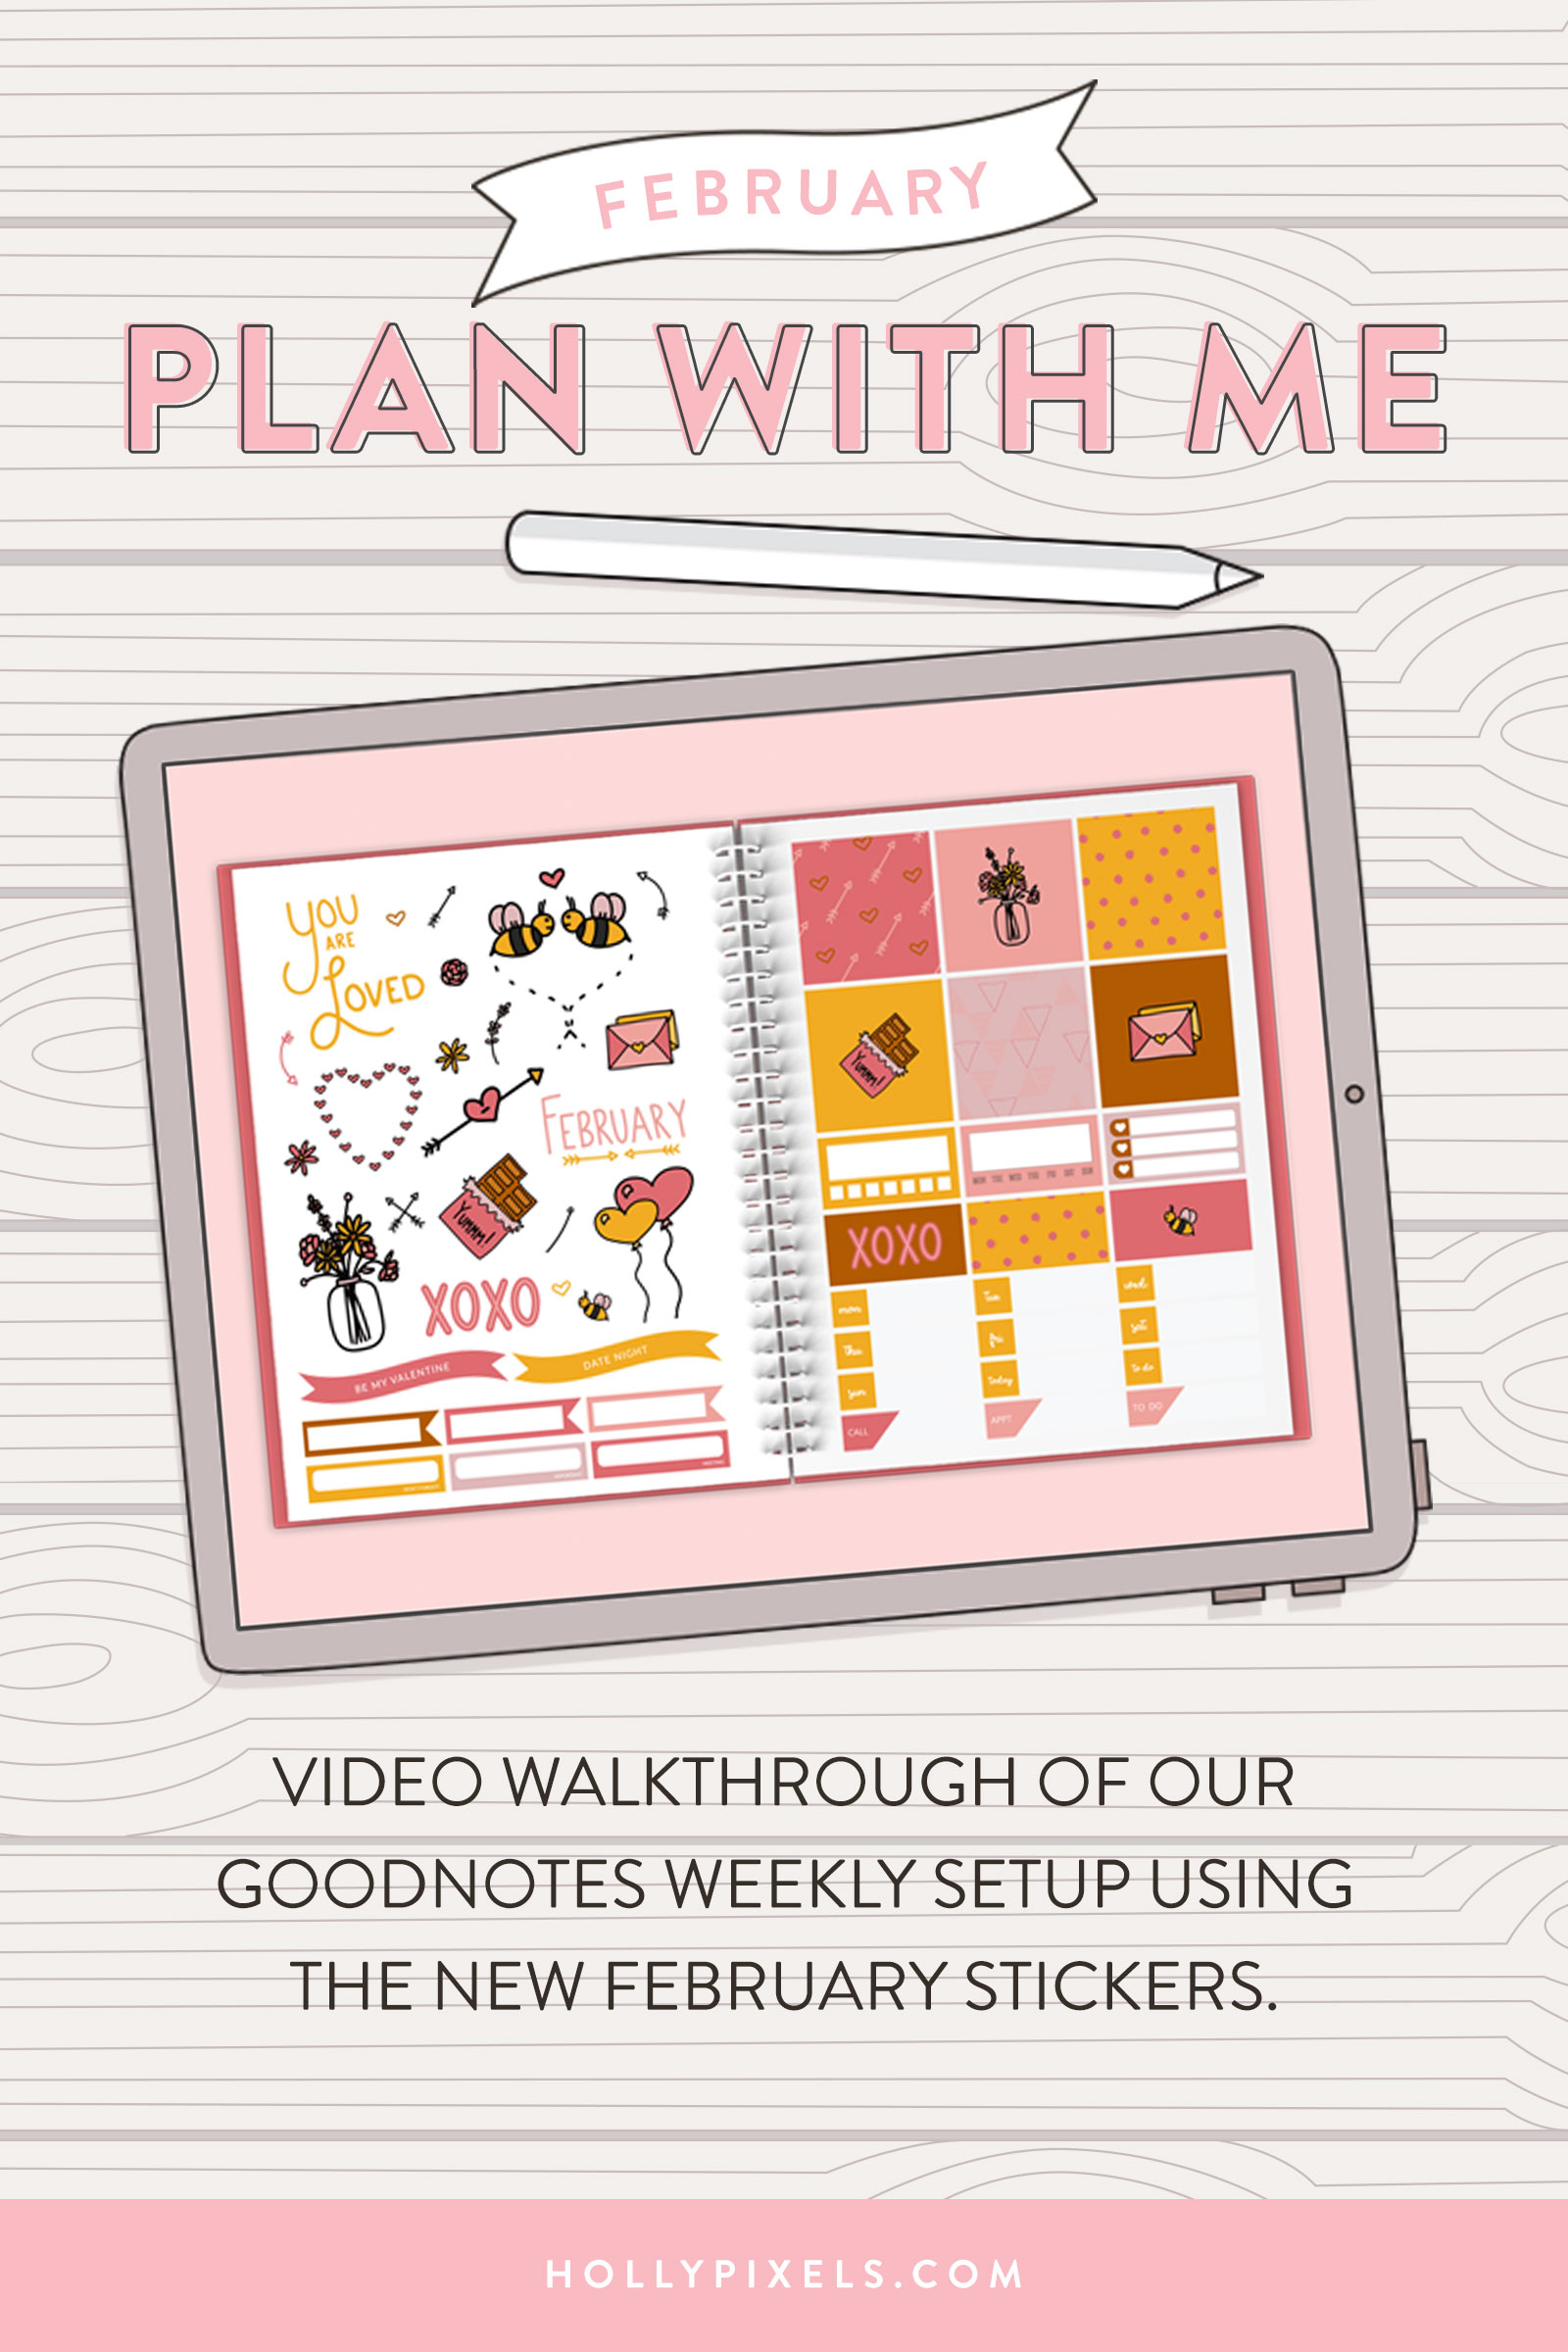 Plan with me this February 2019 as I set up the Weekly Spread of the Pixel Planner using our new February digital stickers for GoodNotes.